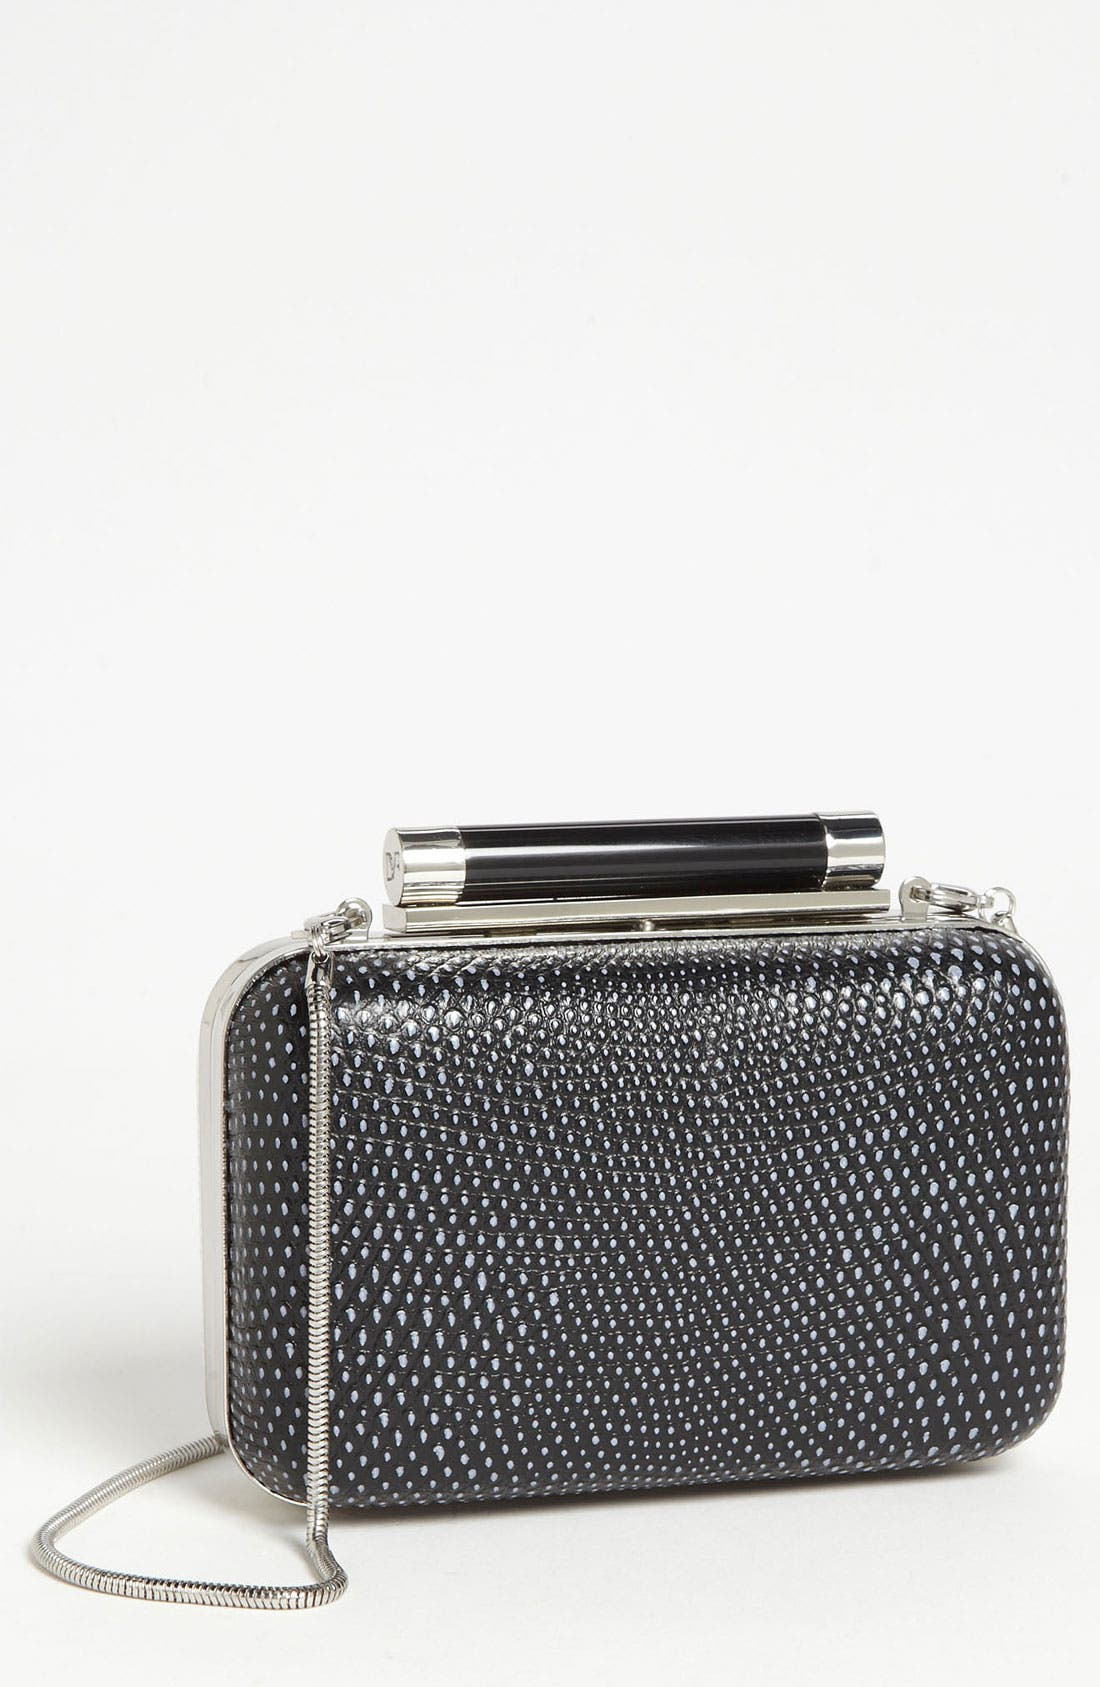 Alternate Image 1 Selected - Diane von Furstenberg 'Tonda - Small' Embossed Clutch